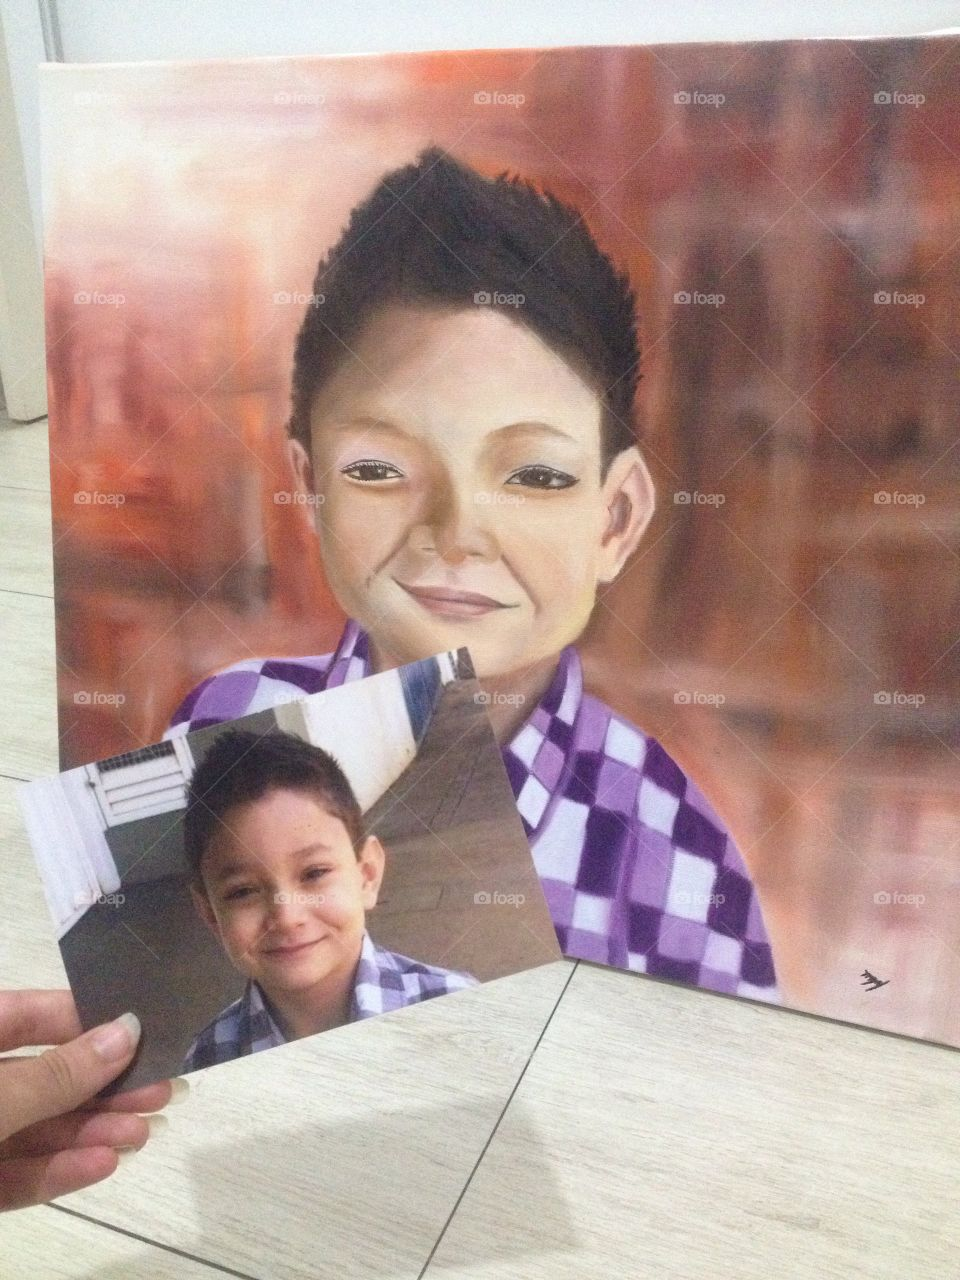 Art paiting human face little boy kid, colors and drawn picture place and purple shirt